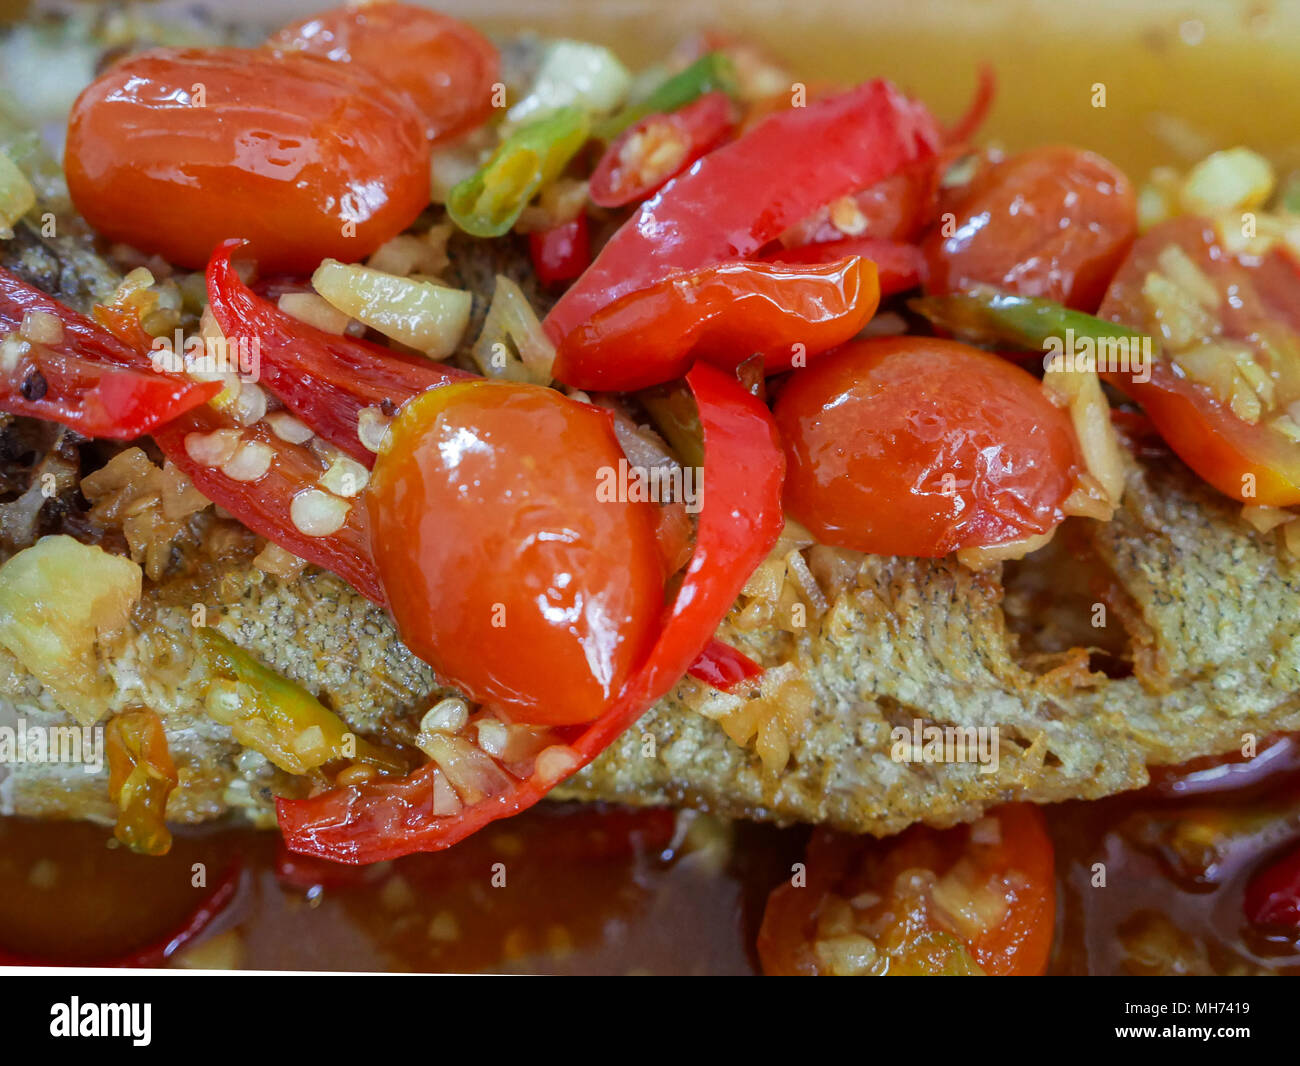 Close Up Image Of Deep Fried Fish With Chili Sauce Pla Rad Prik